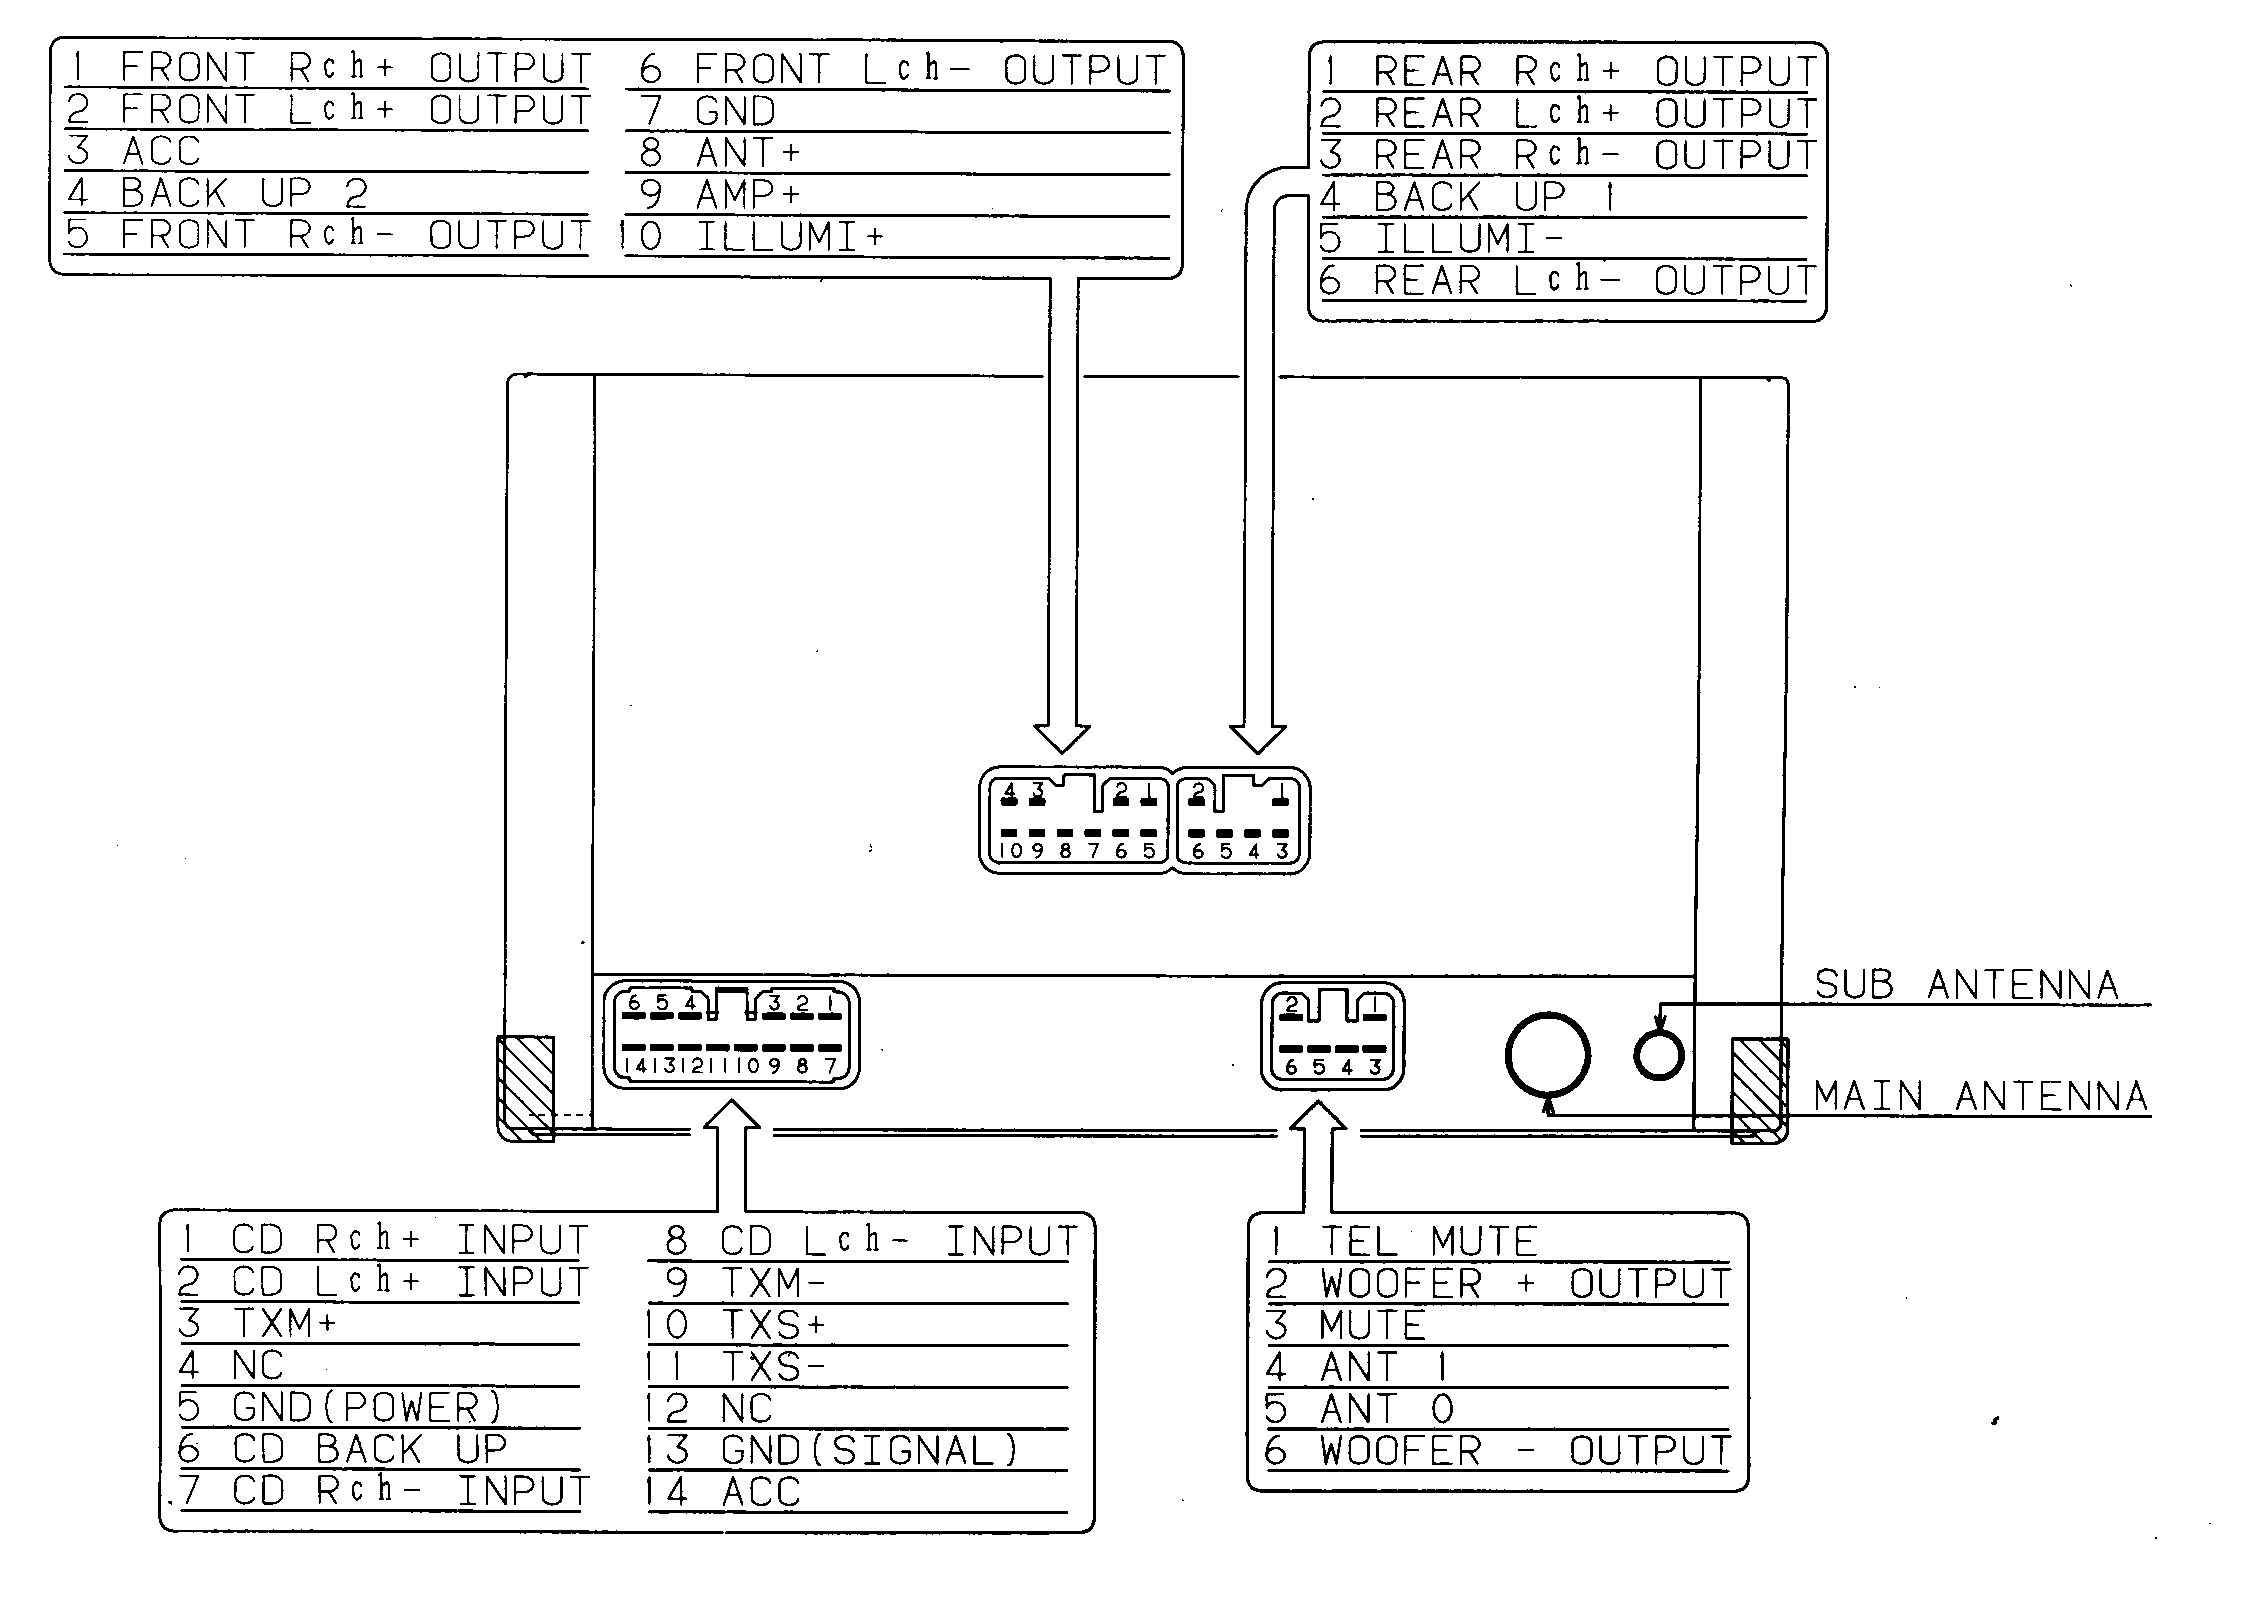 WireHarnessLexus121001 car cd player wiring diagram how to connect car stereo wires 1999 mercury cougar stereo wiring diagram at panicattacktreatment.co